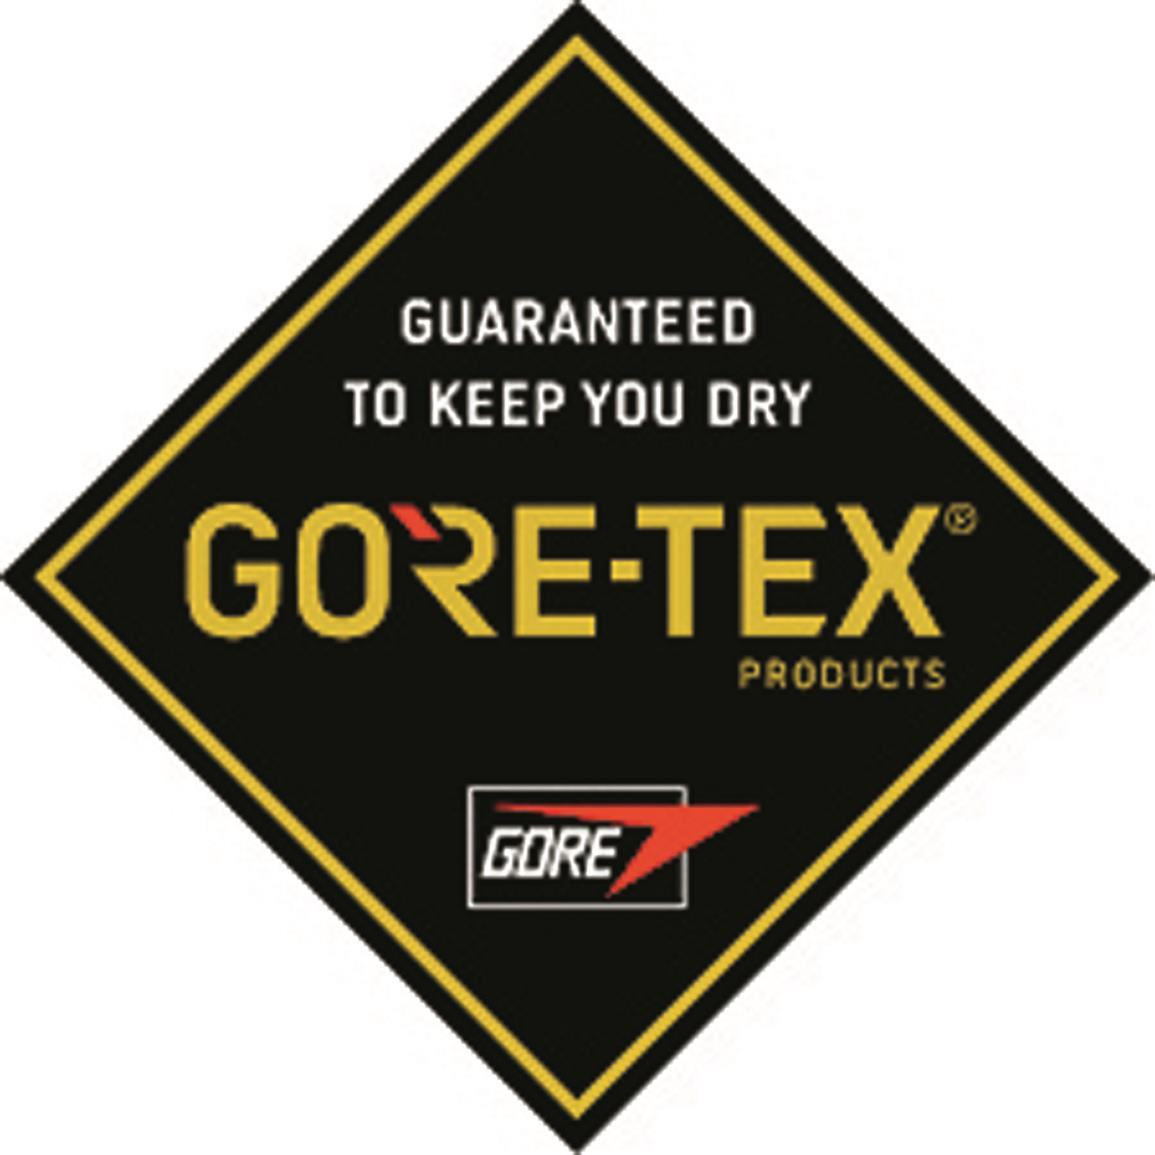 Breathable GORE-TEX 100% waterproof